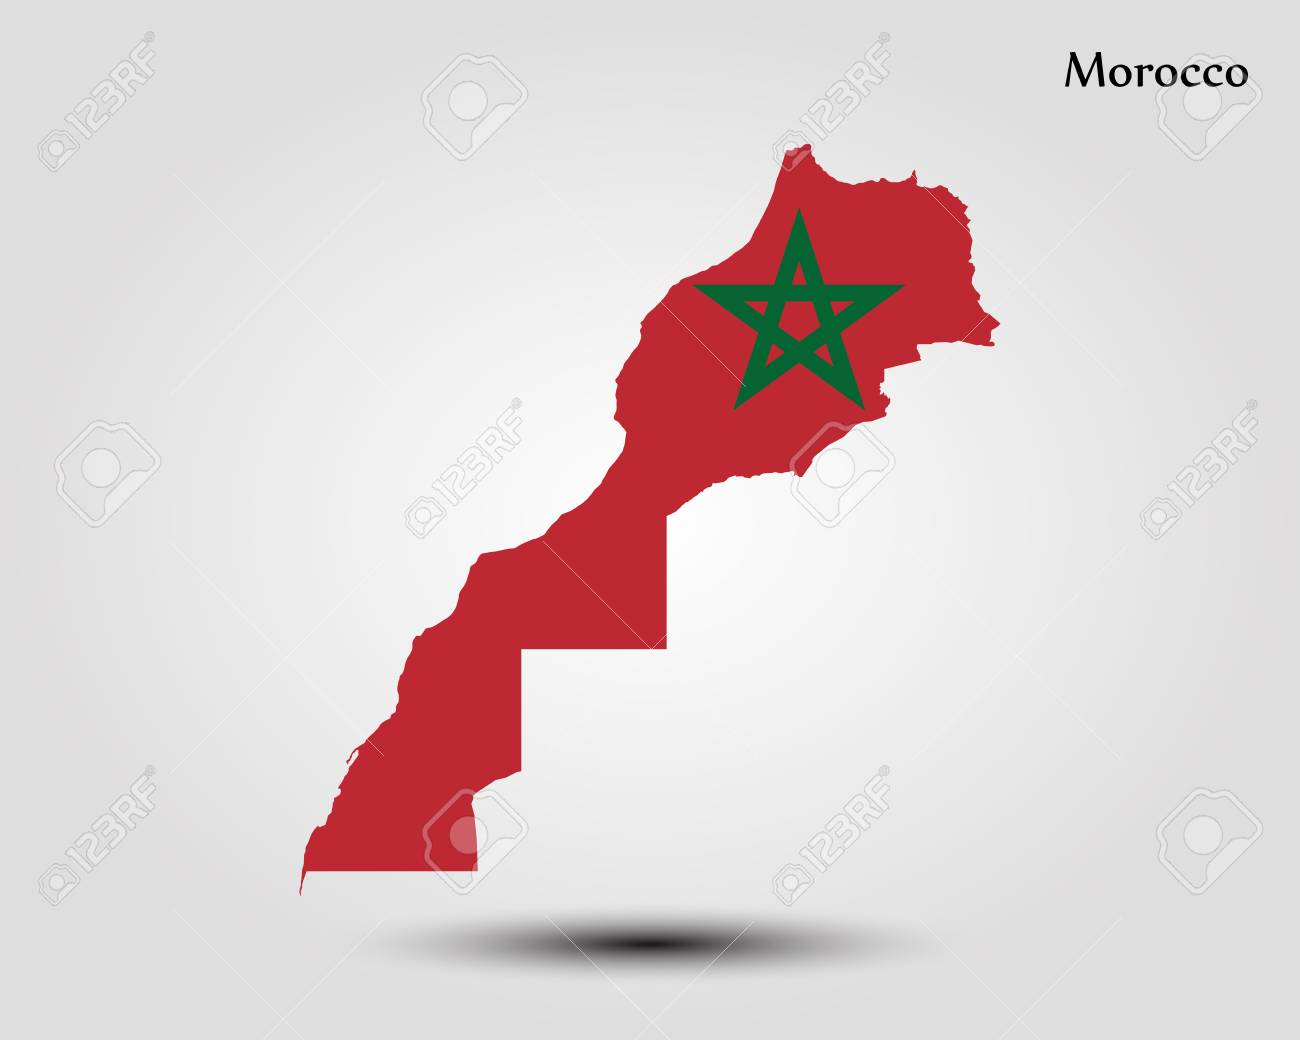 Map of Morocco vector illustration. - 92701679